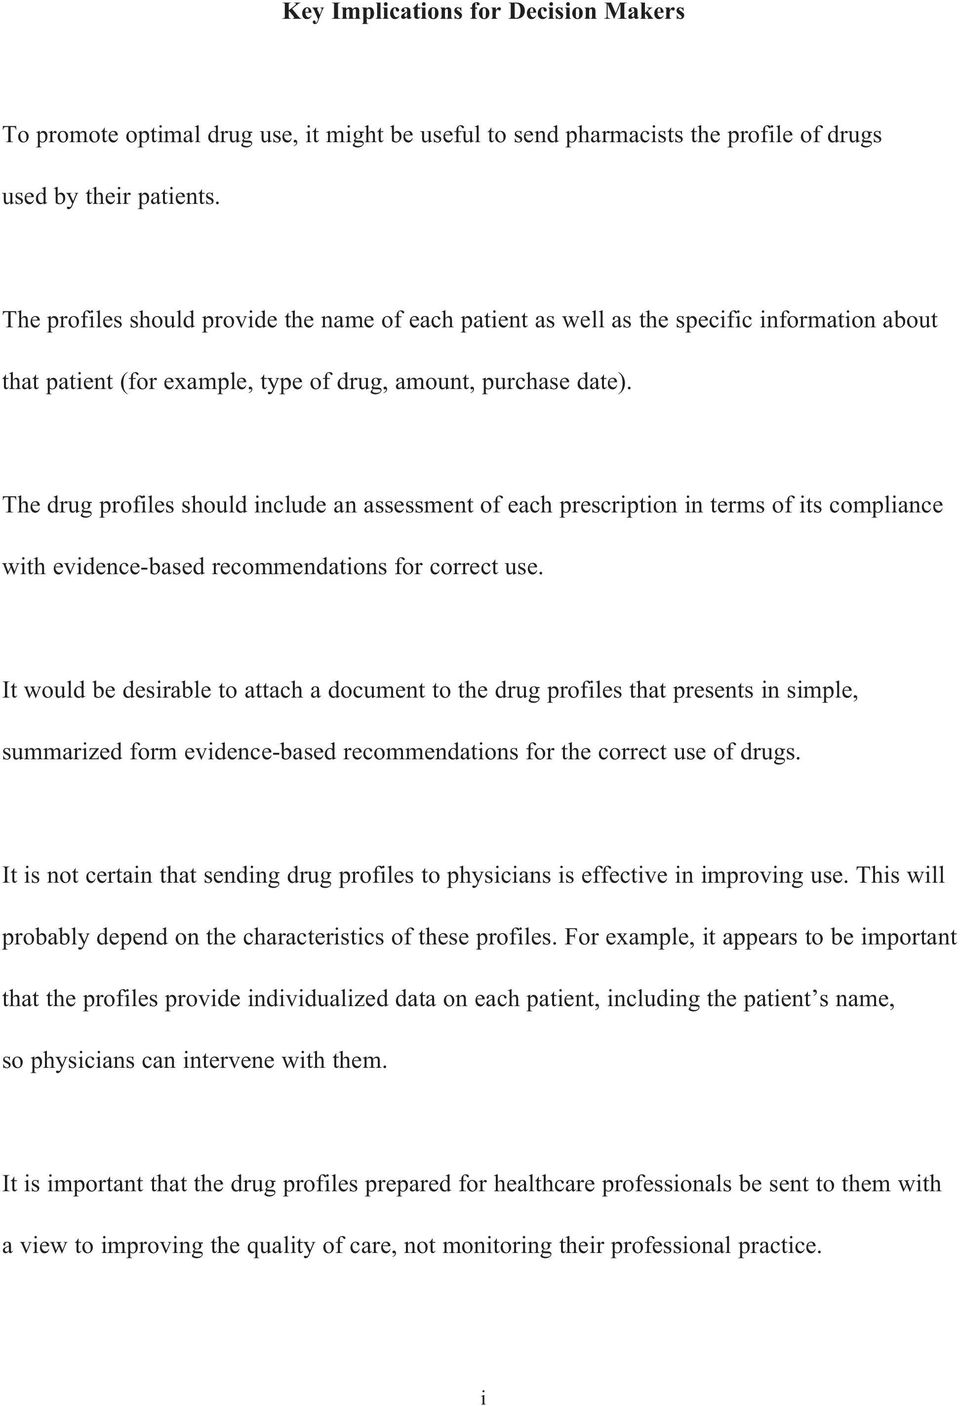 The drug profiles should include an assessment of each prescription in terms of its compliance with evidence-based recommendations for correct use.